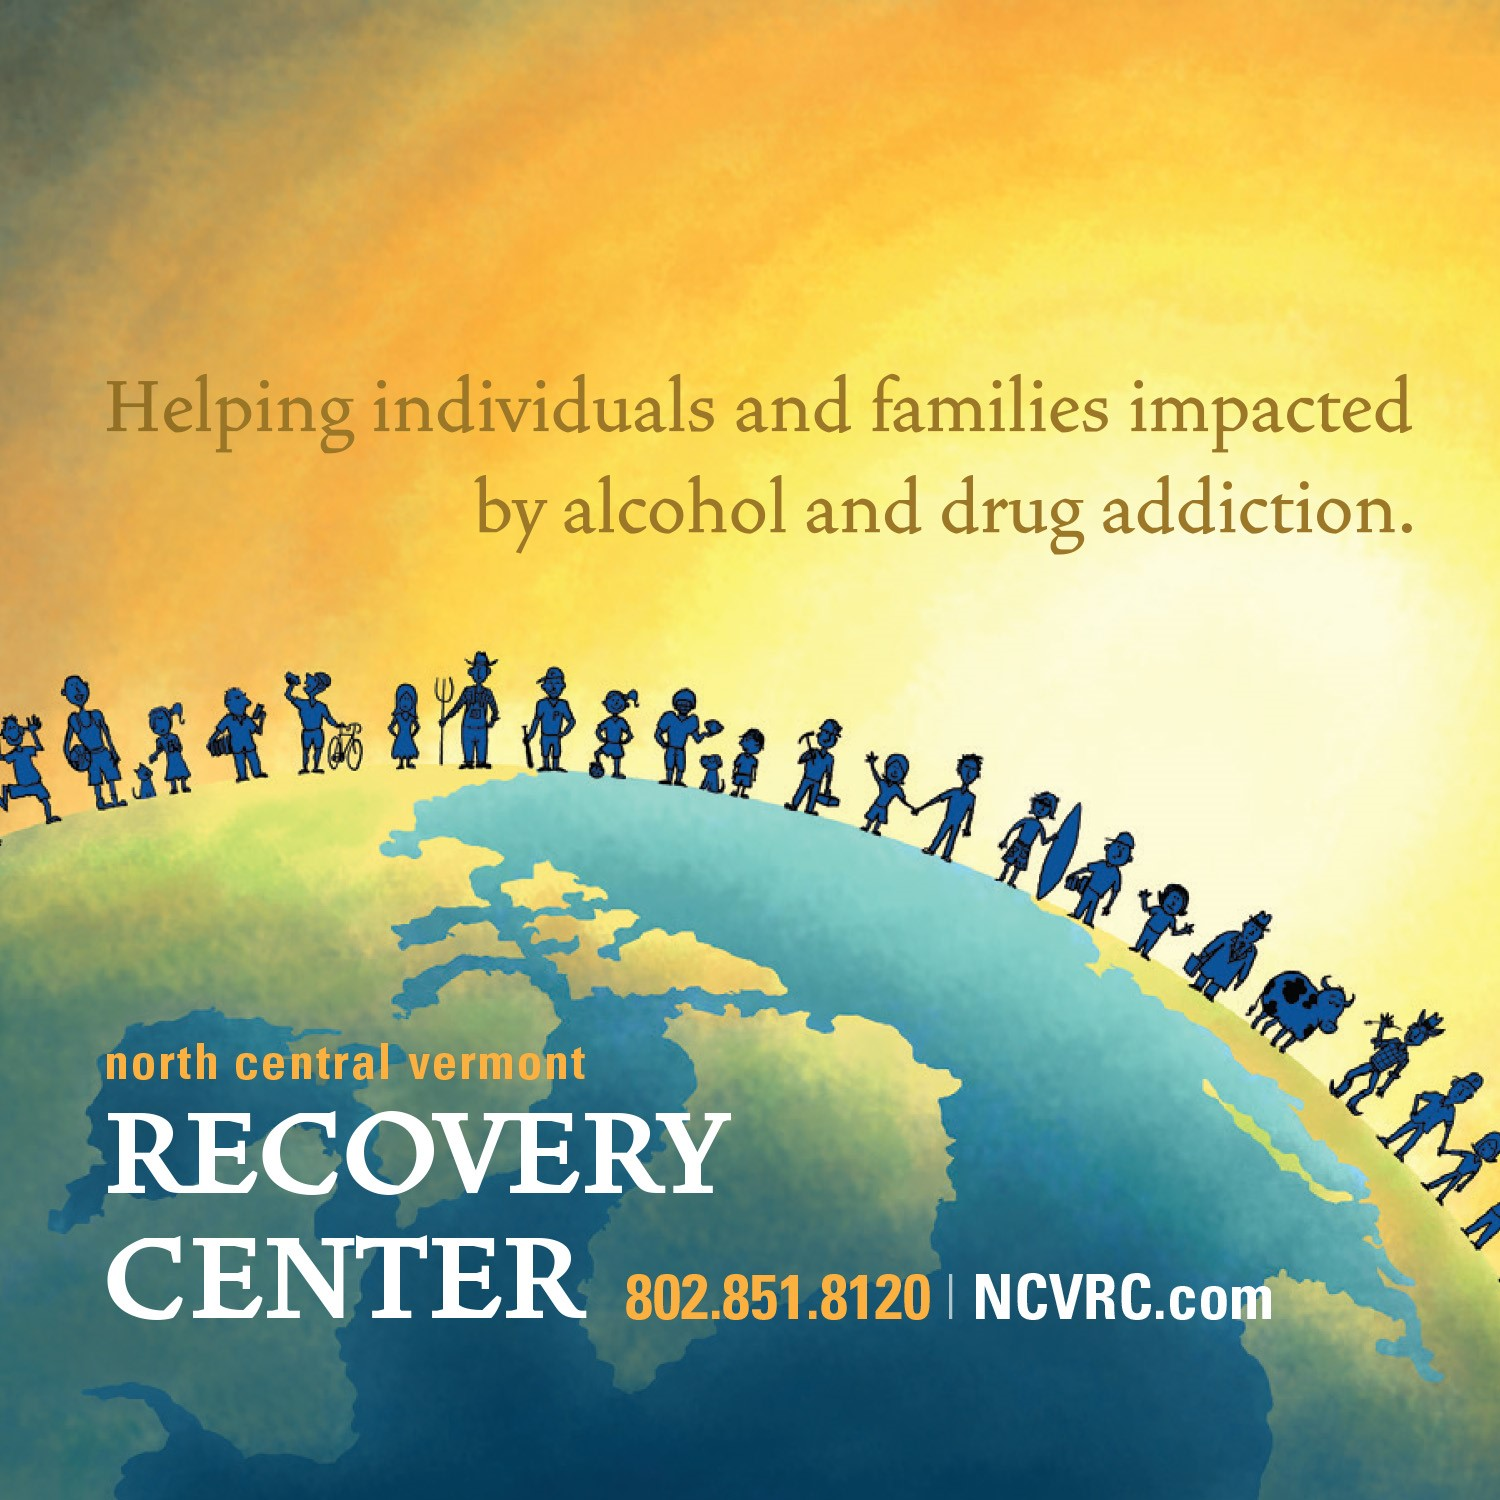 North-Central-Vermont-Recovery-Center-1.jpg